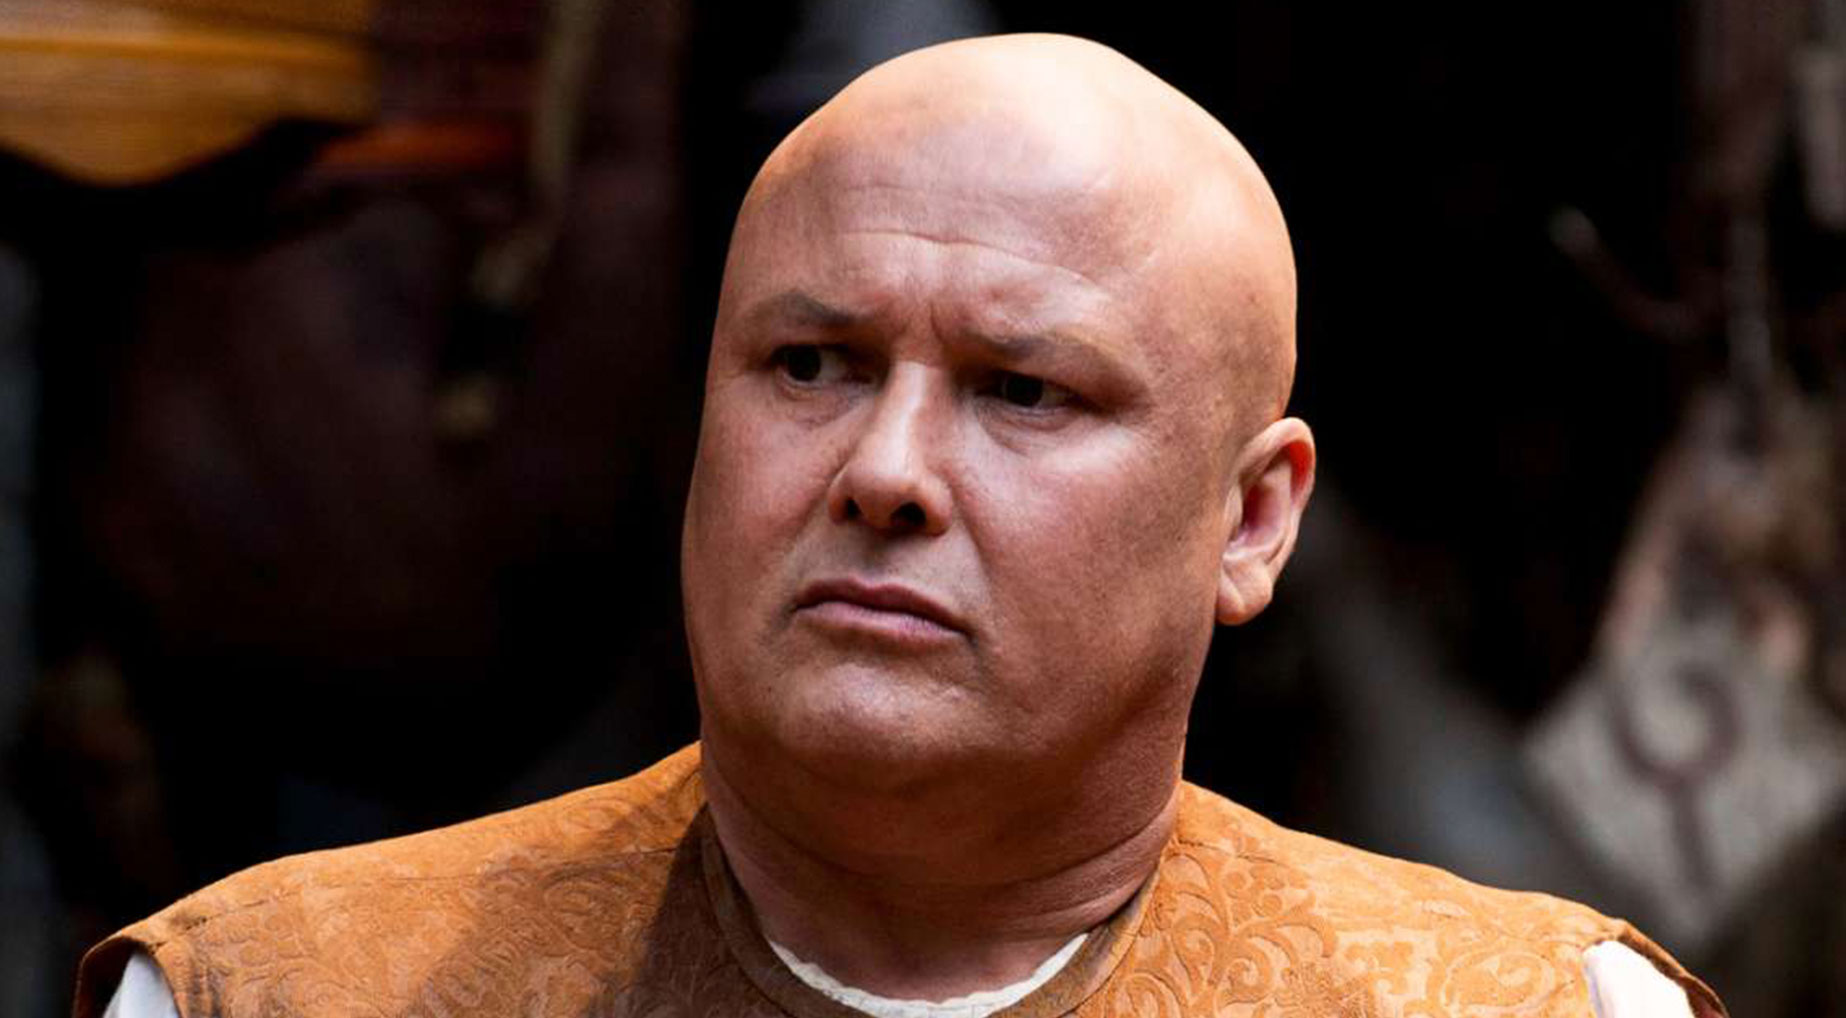 Lord-Varys-HBO-Shavers